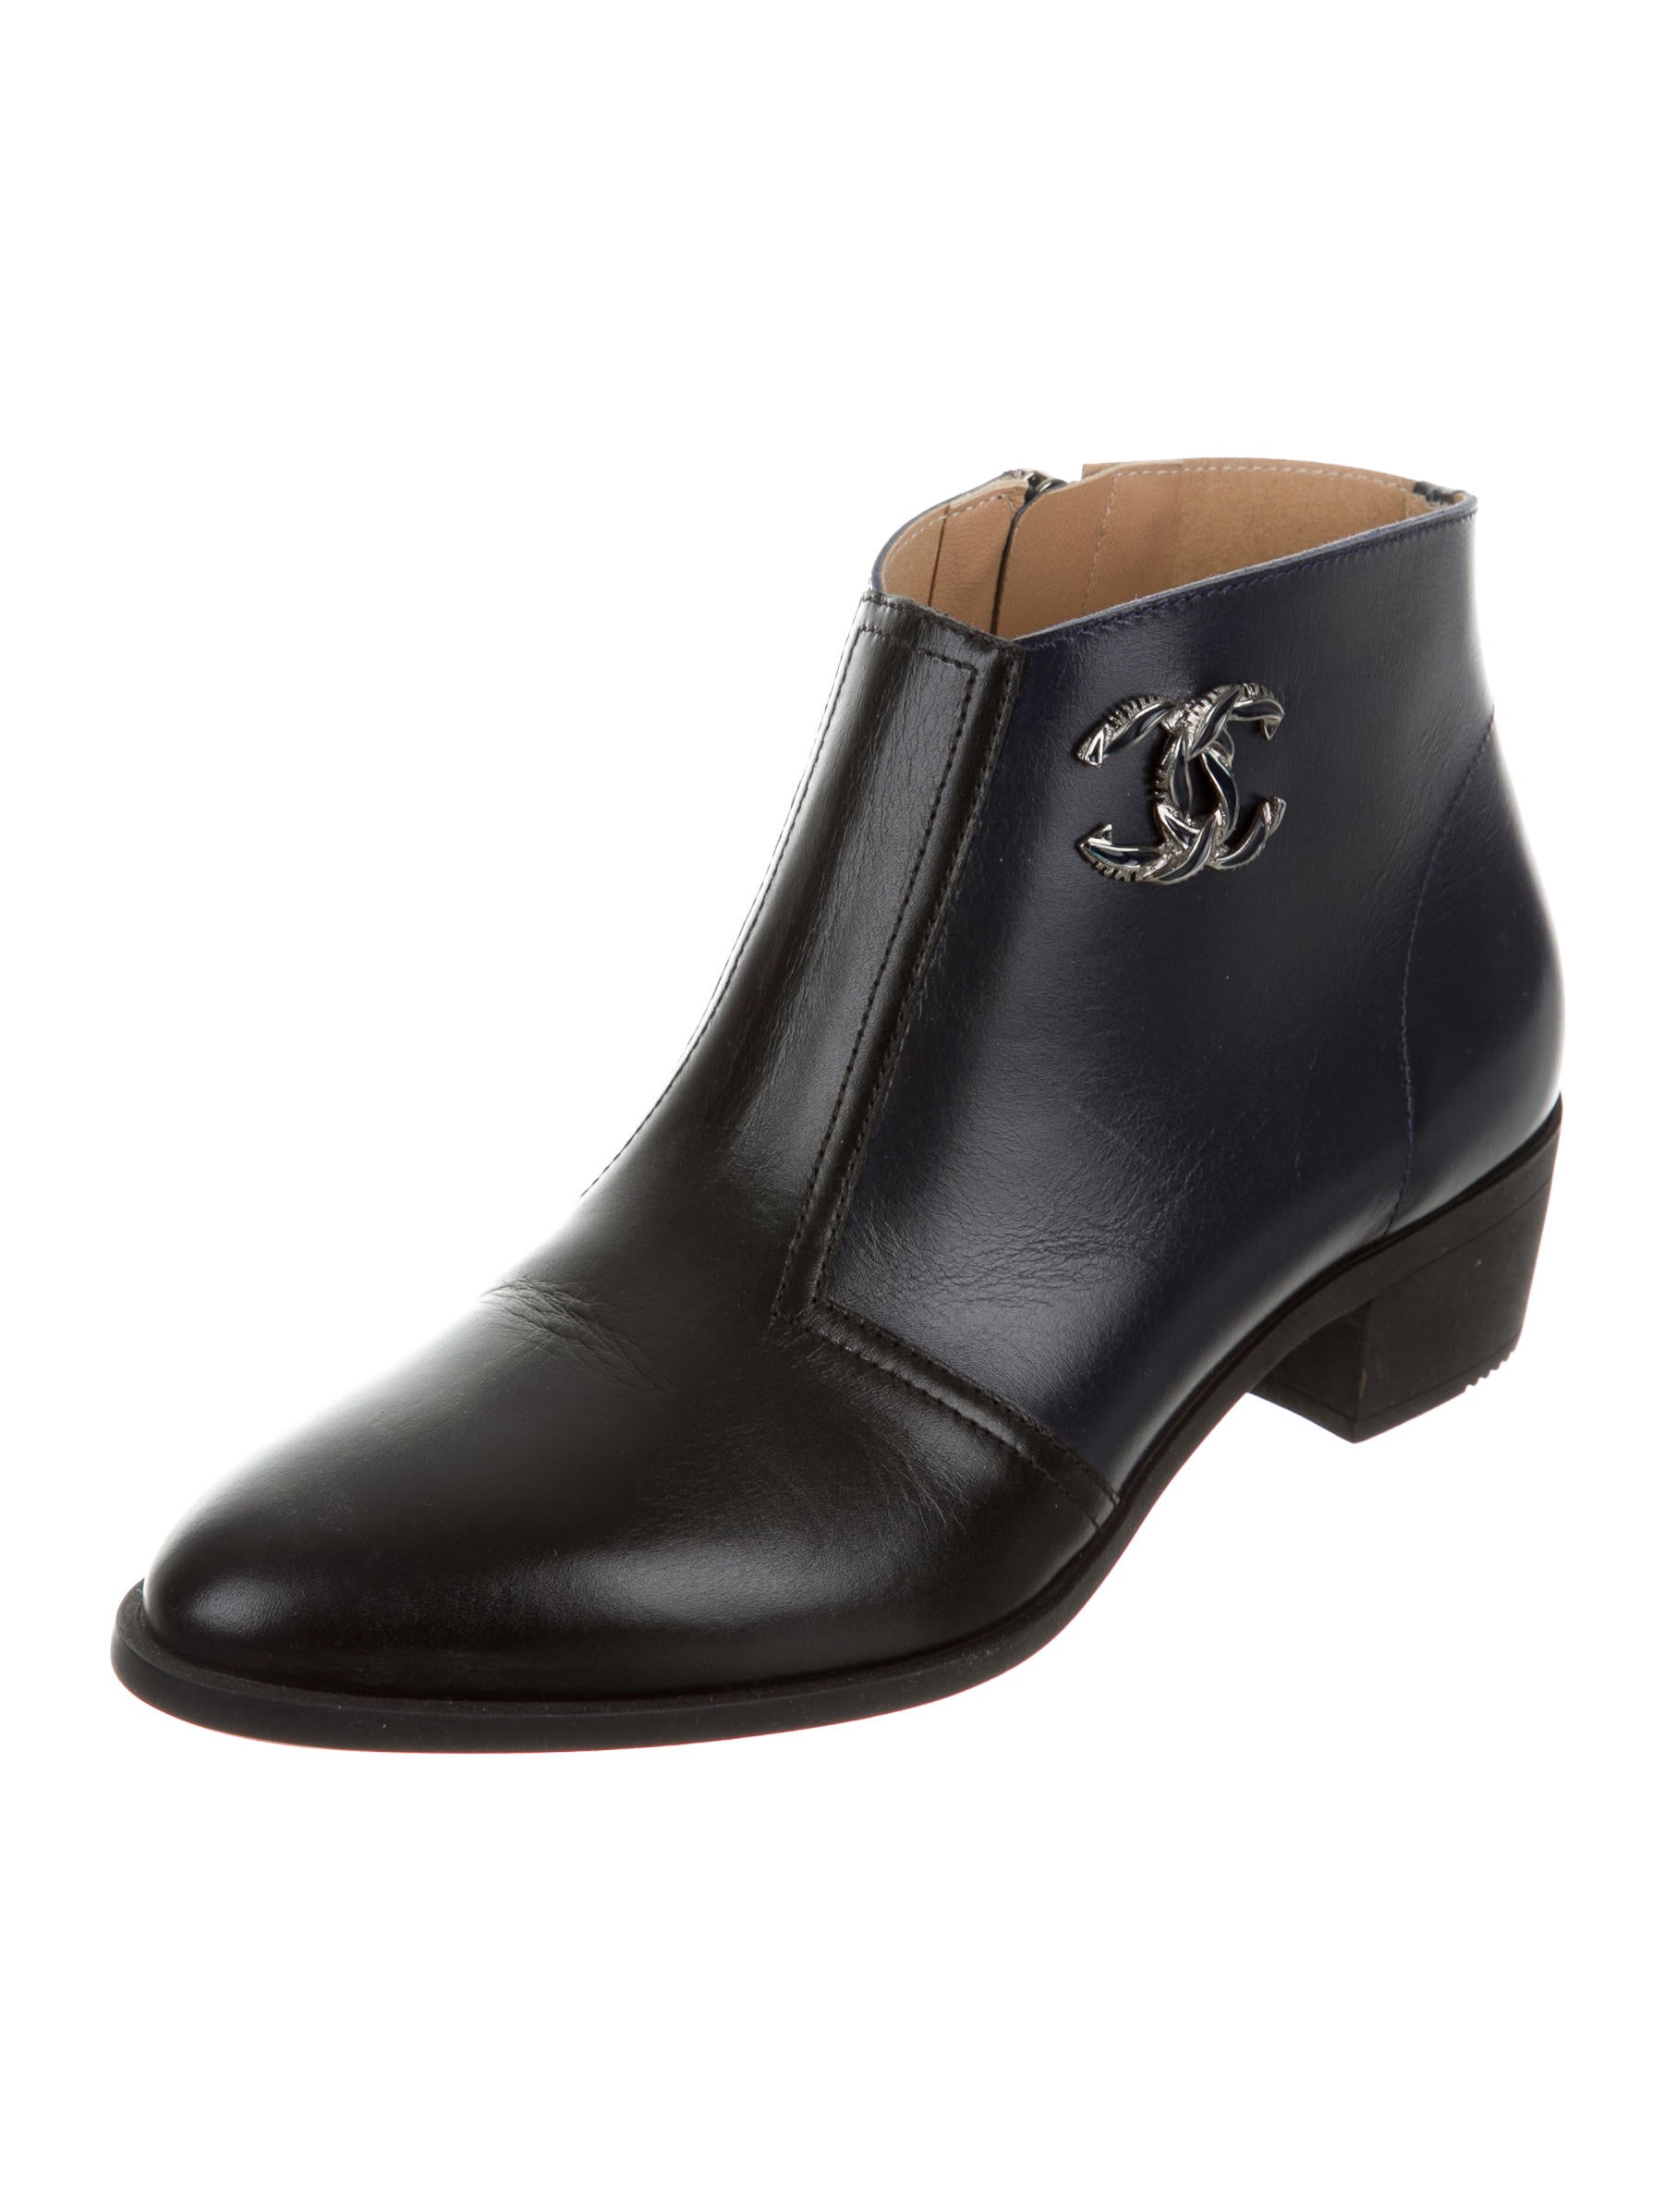 Chanel 2016 Cc Ankle Boots Shoes Cha165341 The Realreal